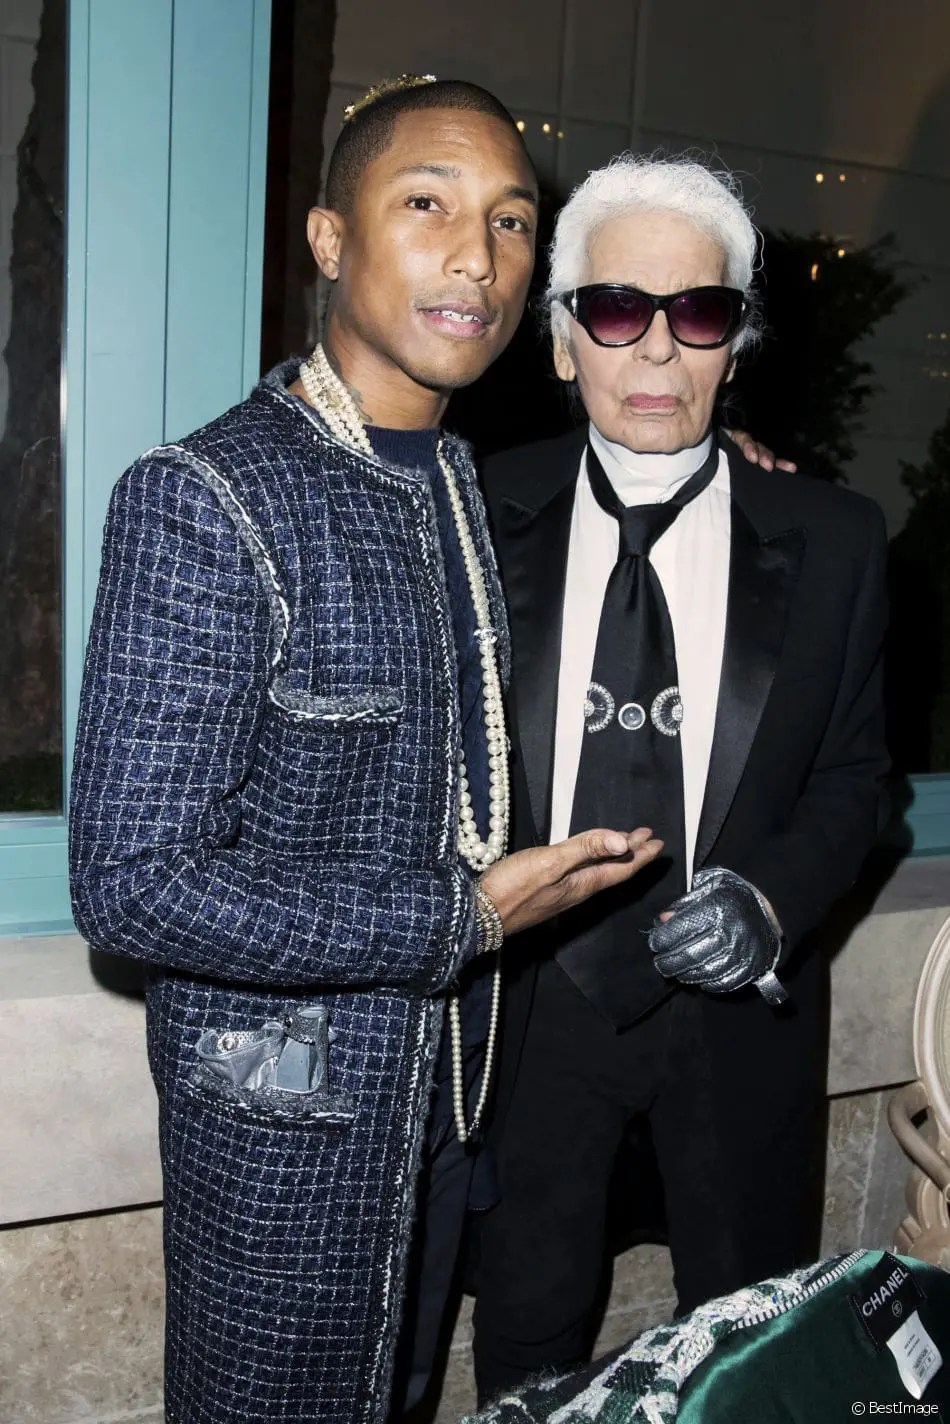 chanel-metiers-d'art-pharrell-williams-karl-lagerfled-eleonora-de-gray-runway-magazine